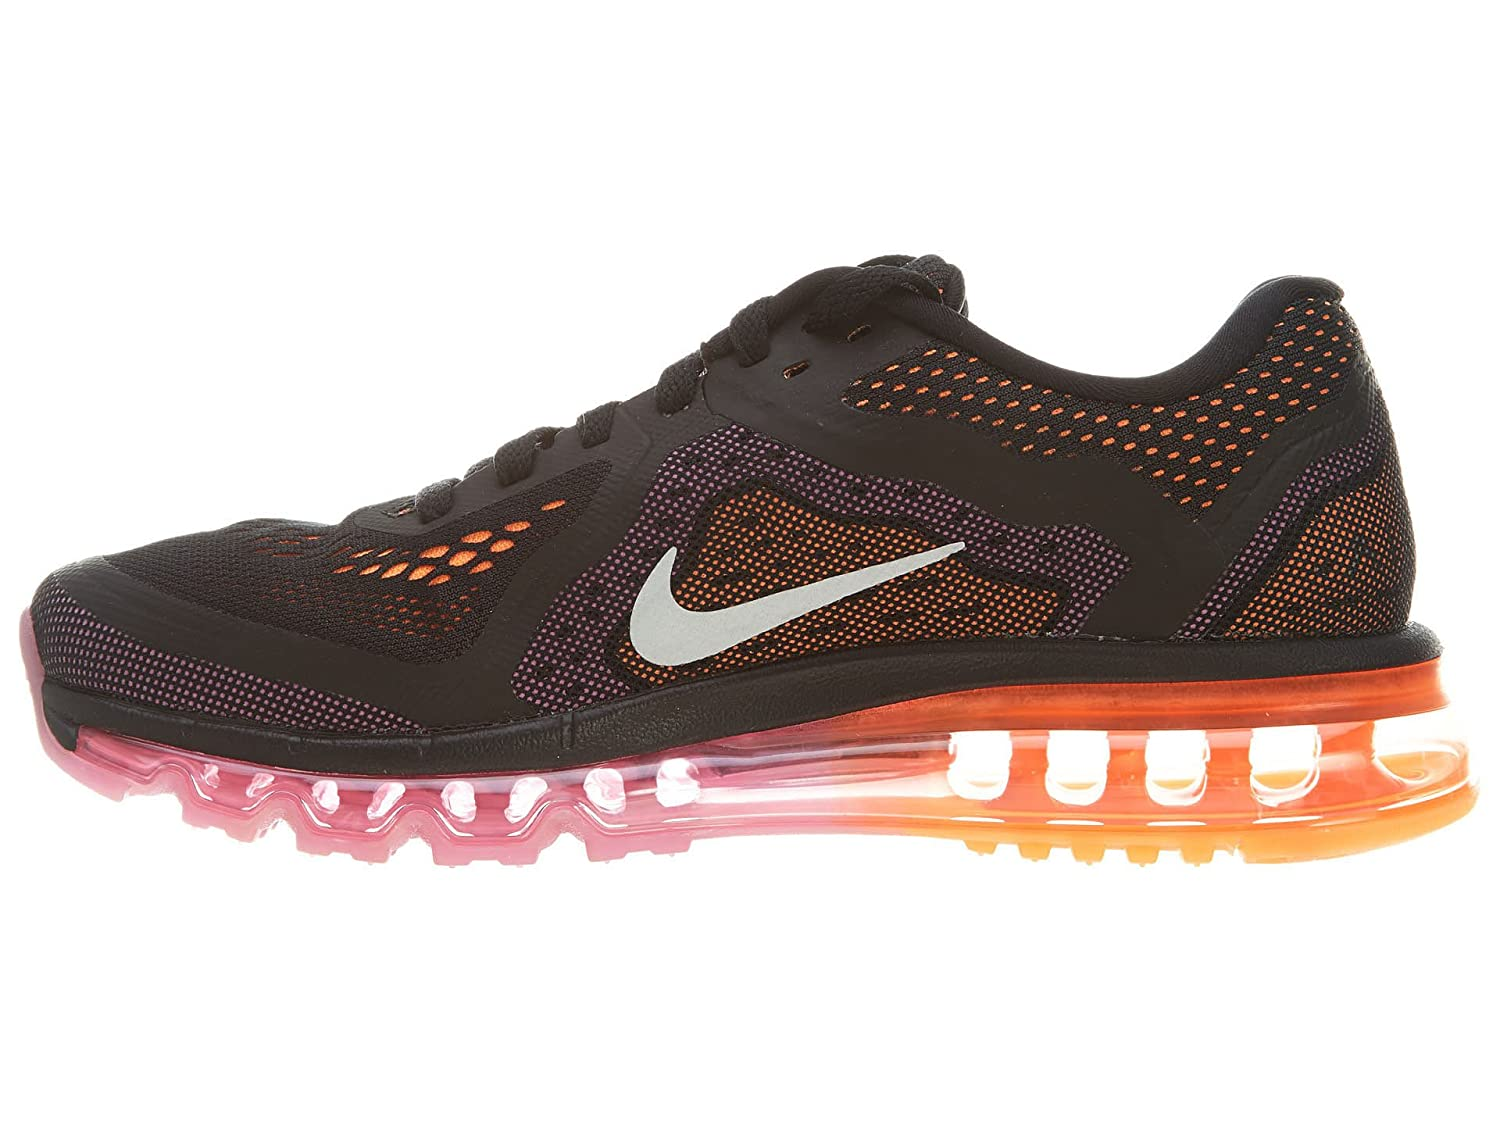 buy popular f7d5f 93047 Nike Air Max 2014 Femmes Sneakers 621078-007  Amazon.fr  Chaussures et Sacs